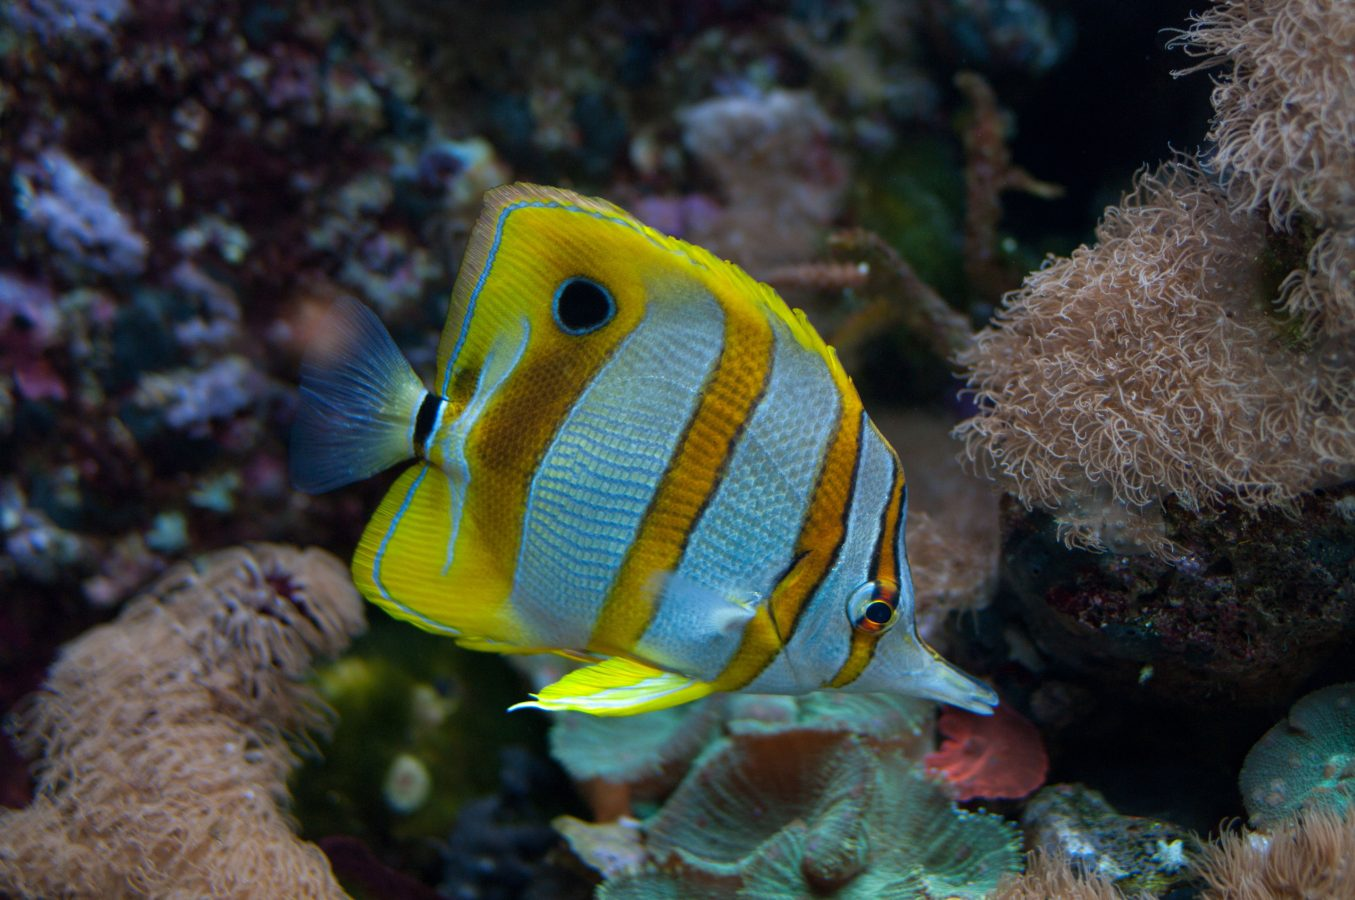 Butterfly fish swims through exhibit